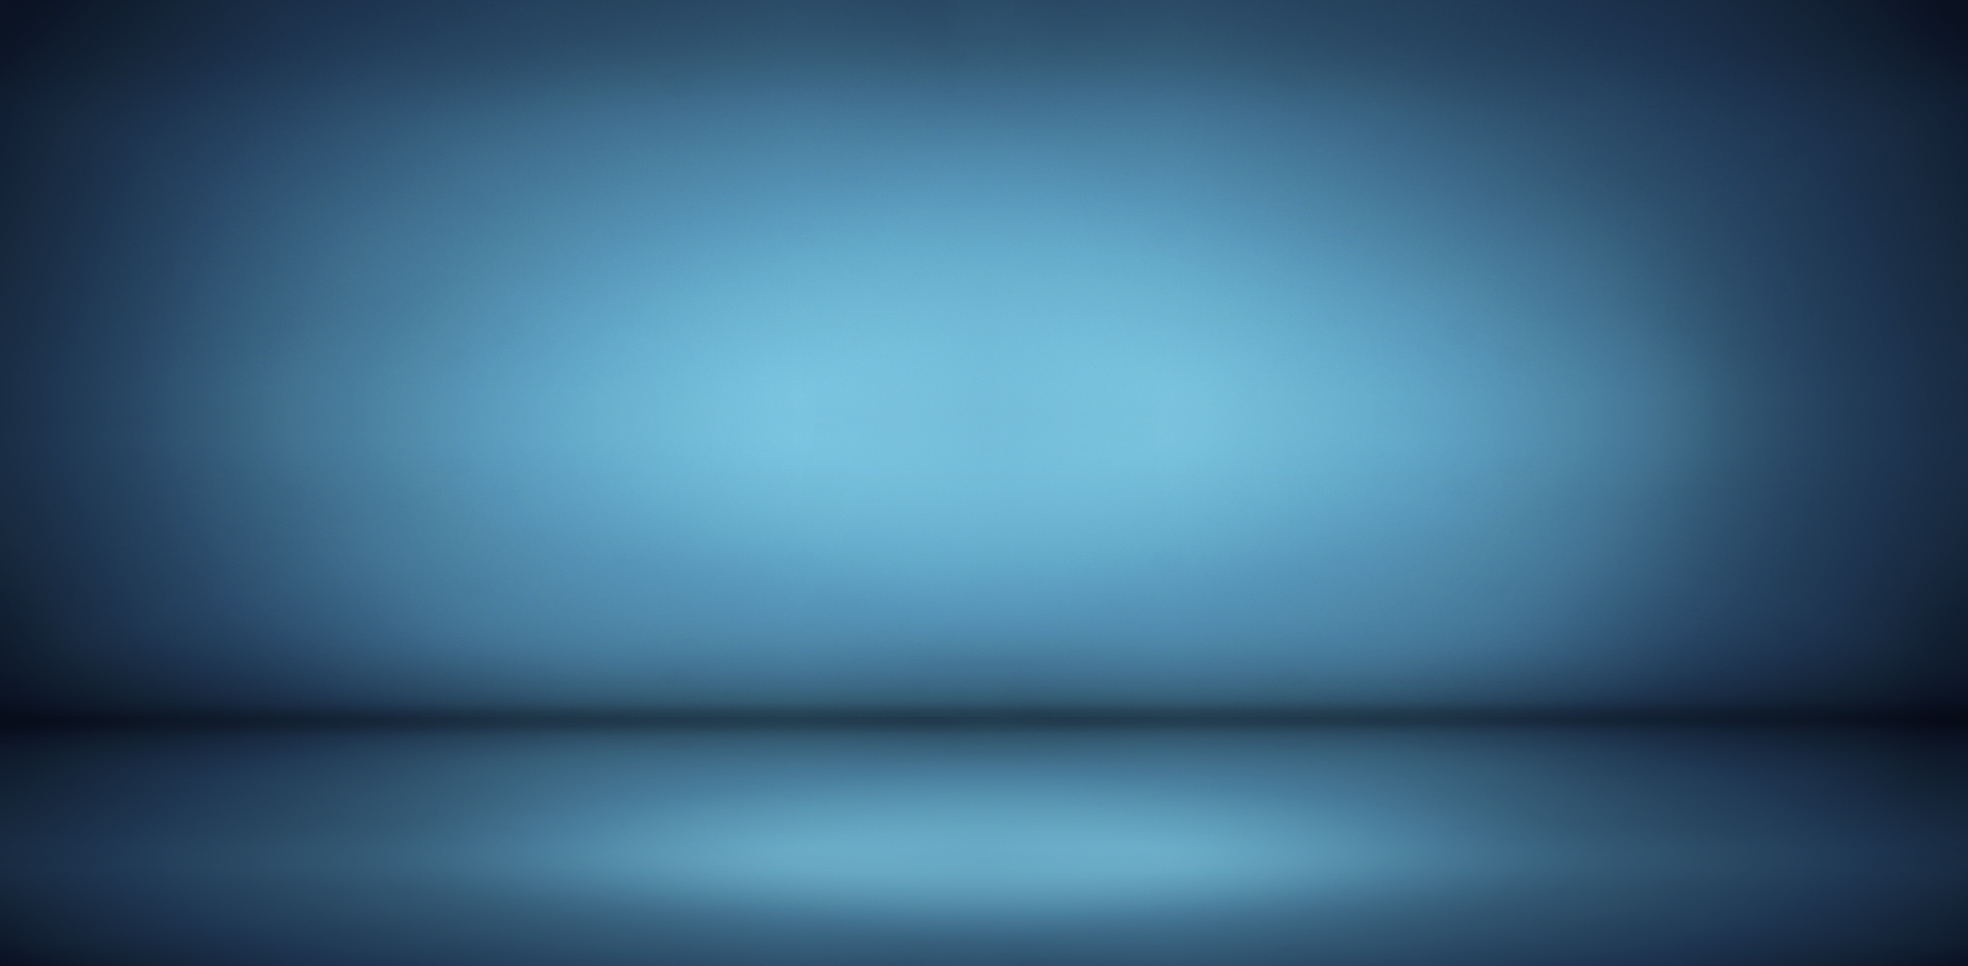 blue gradient studio and empty room background, can be used